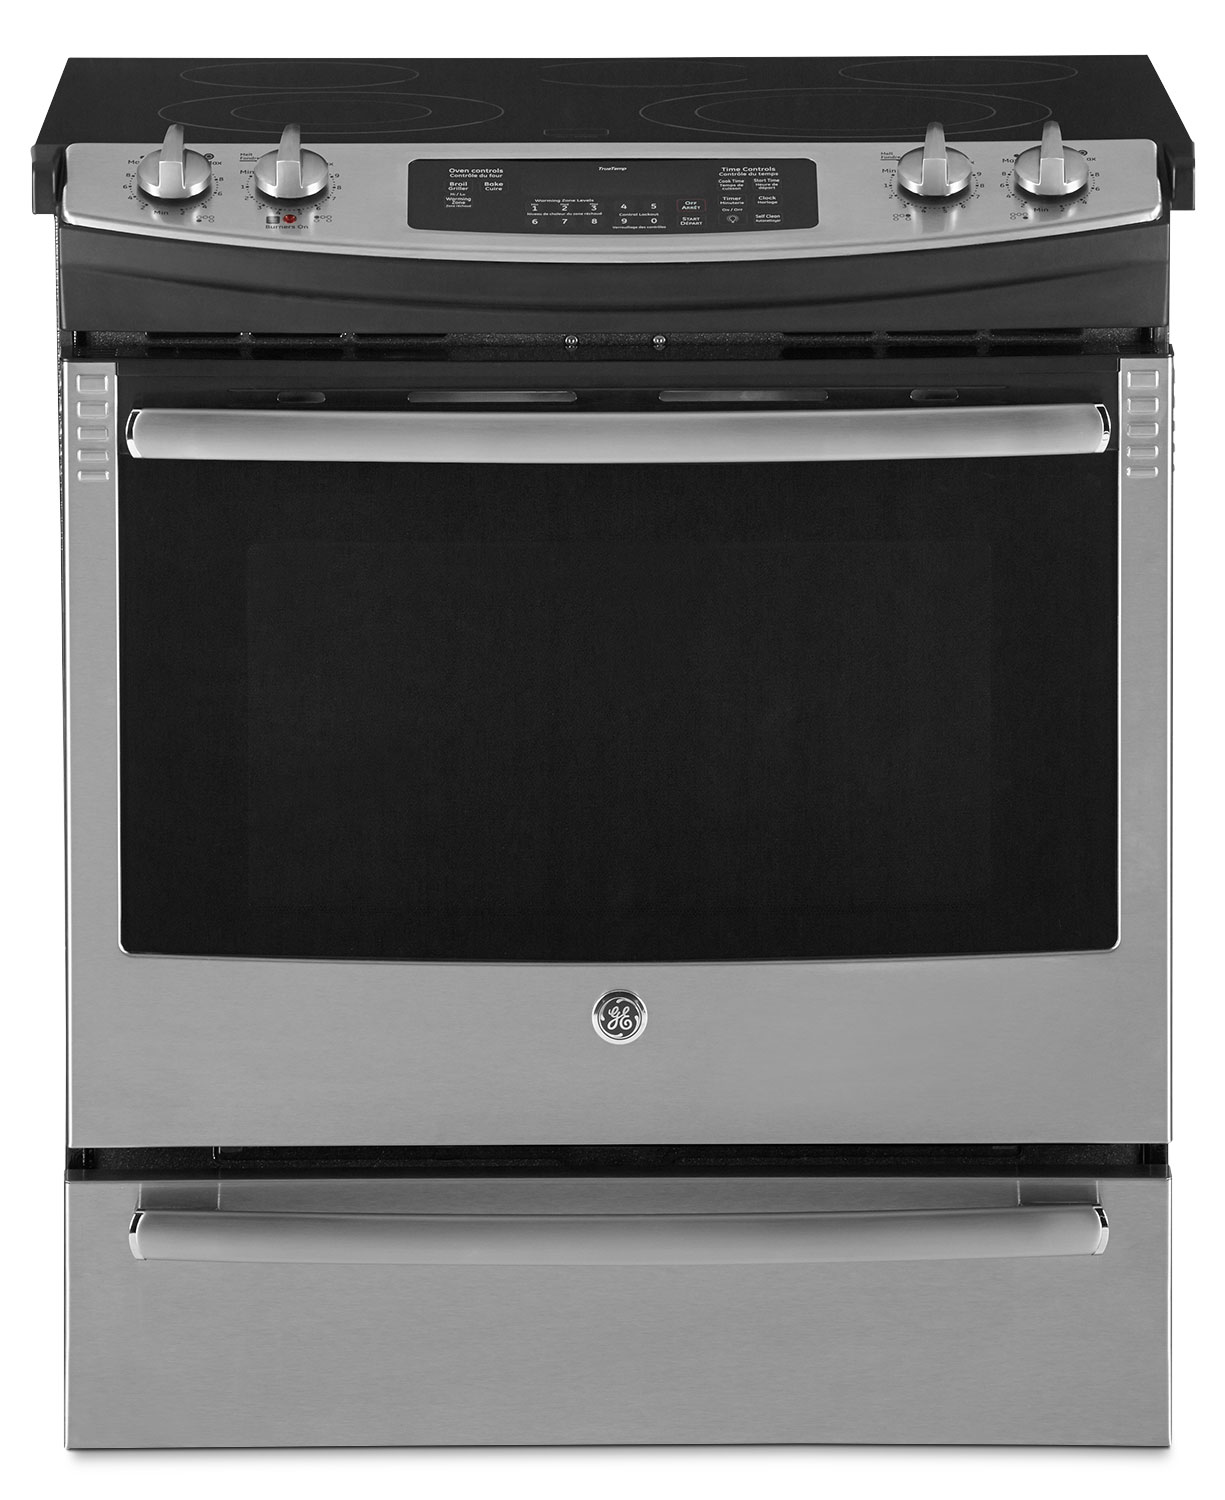 Cooking Products - GE 5.2 Cu. Ft. Slide-In Electric Range – JCS630SFSS